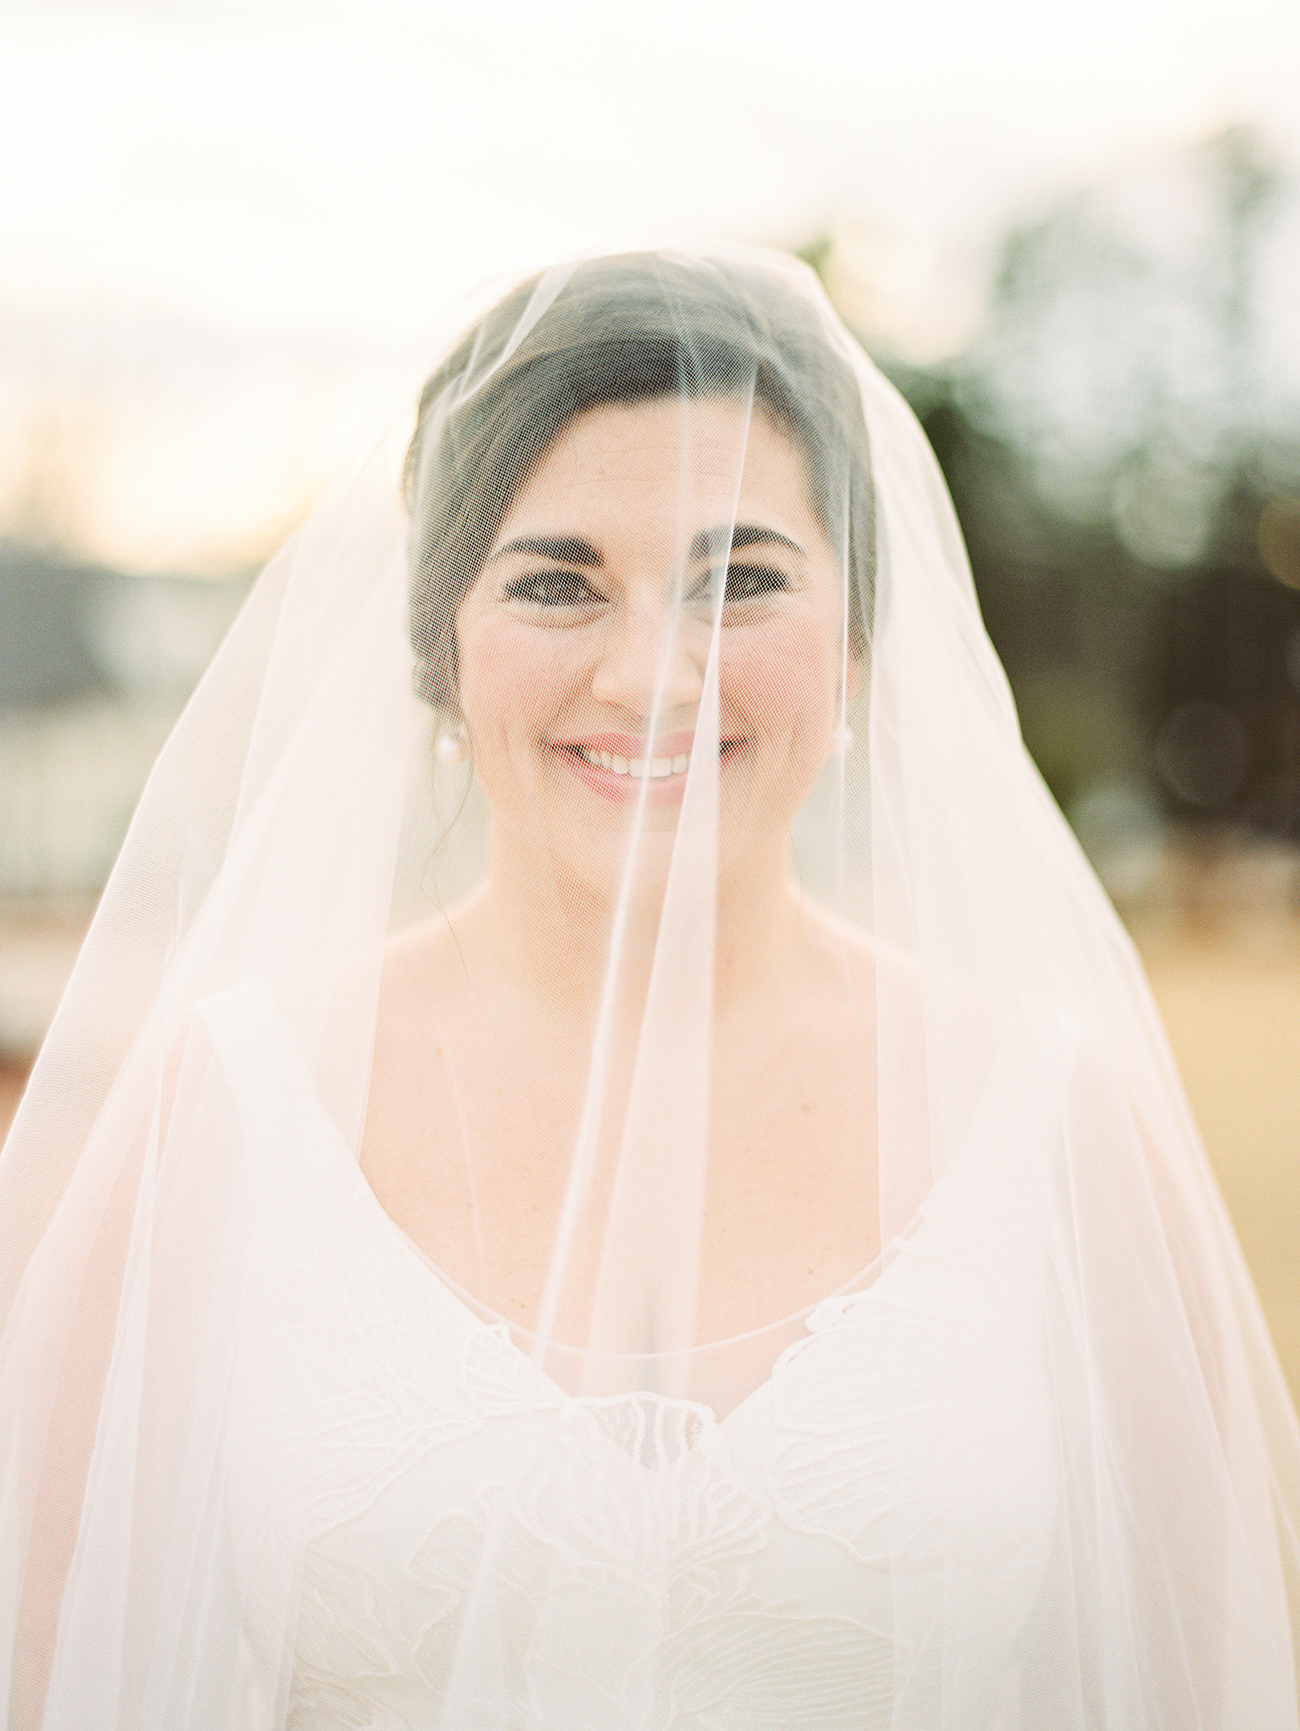 nrp-nancy-ashleydavisbridals-2023